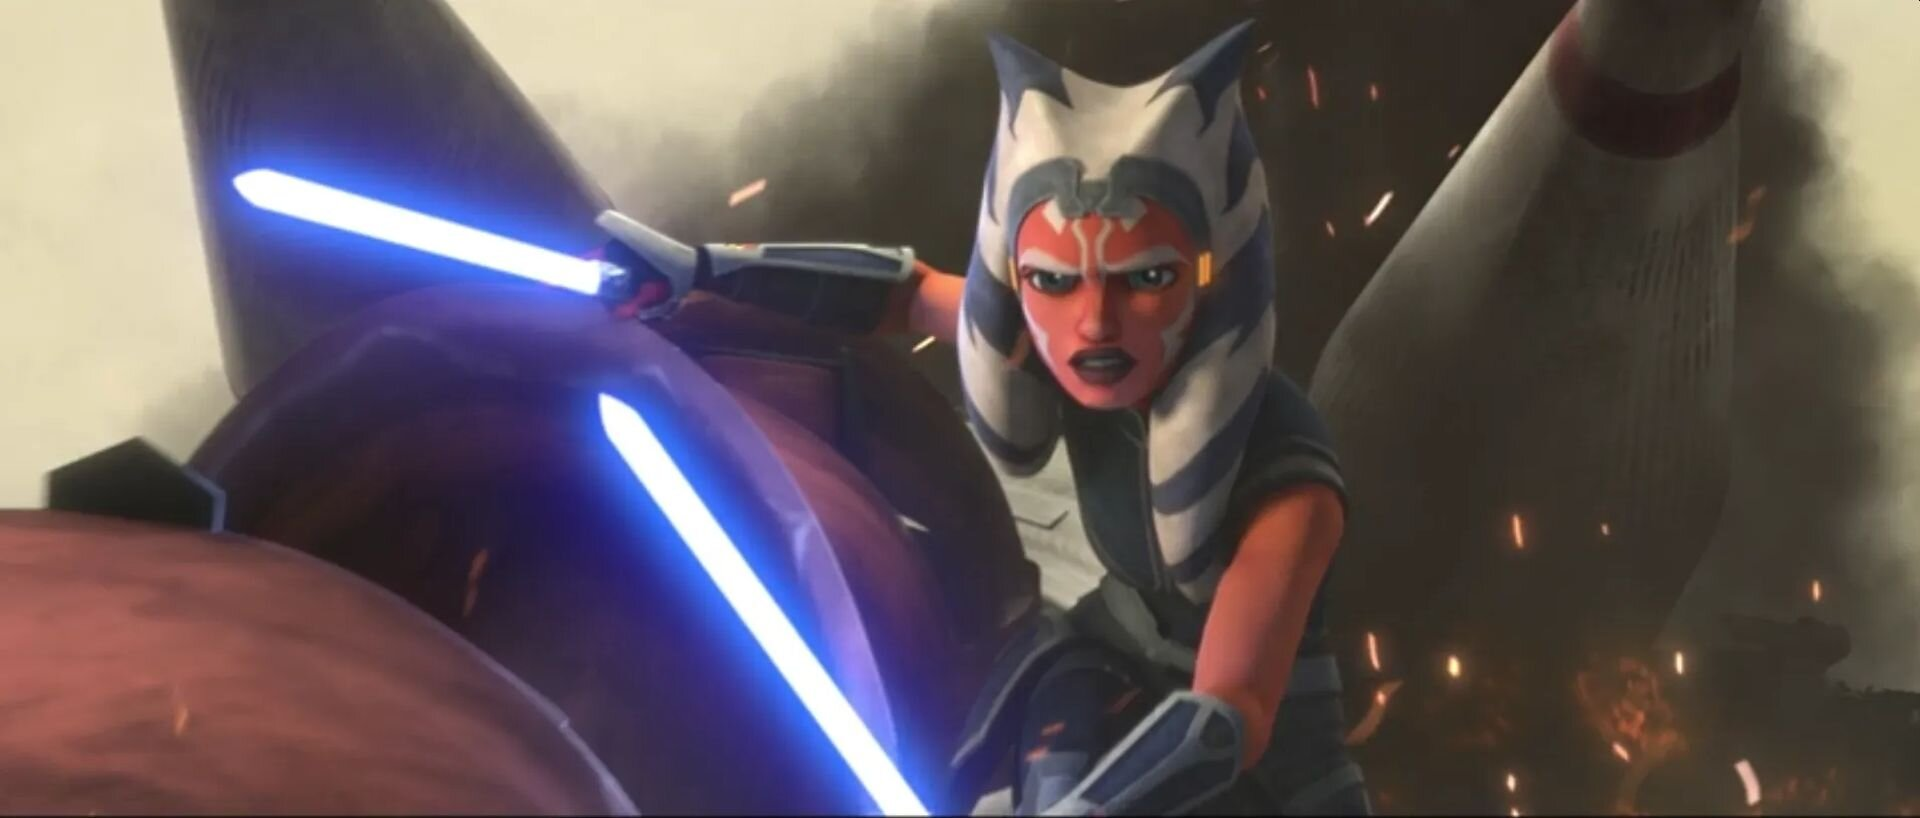 The Final Season Of Star Wars The Clone Wars Concludes Starloggers